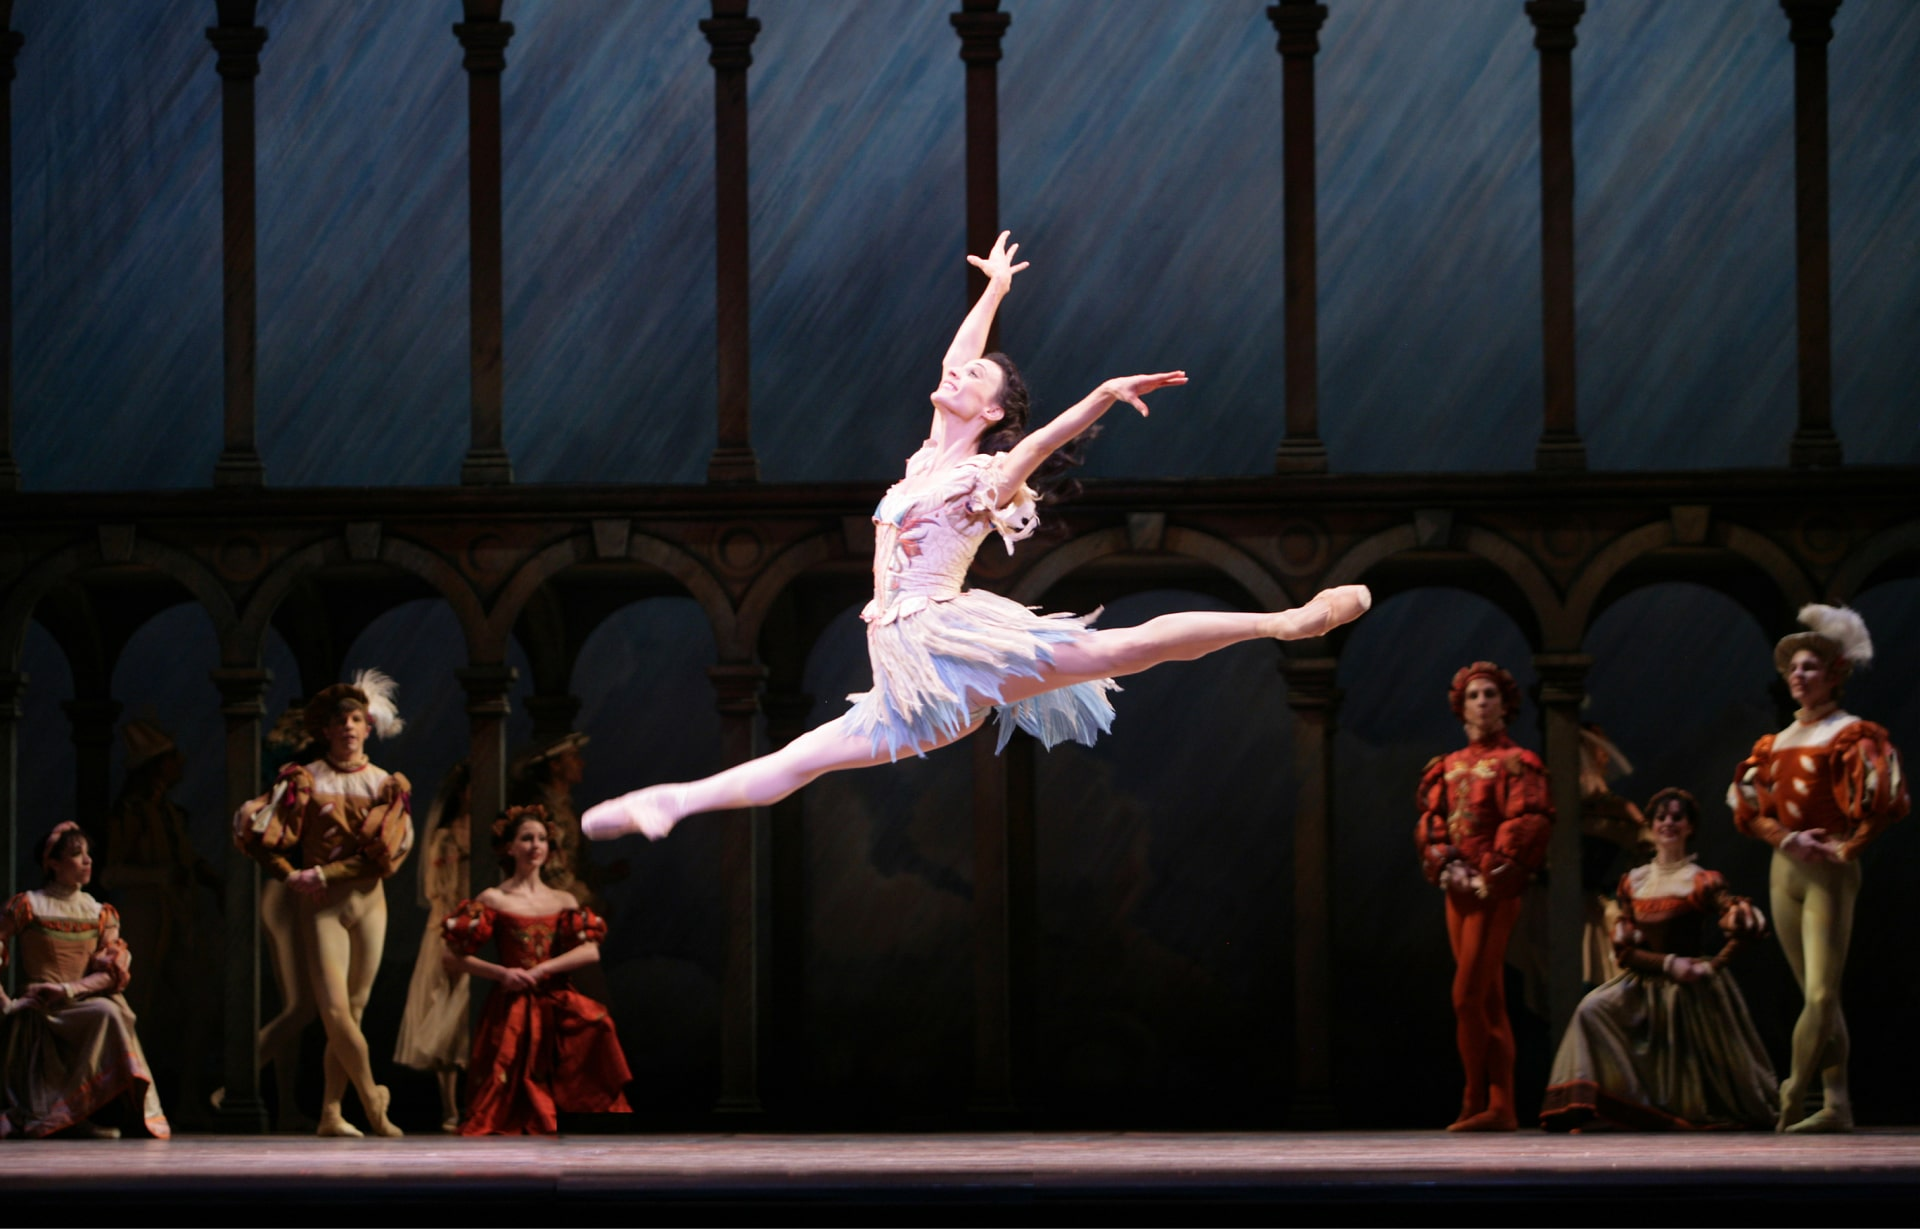 Ballerina in white feathery skirt leaps arms outstretched, watched by courtly dancers in front of arches against painted blue sky.